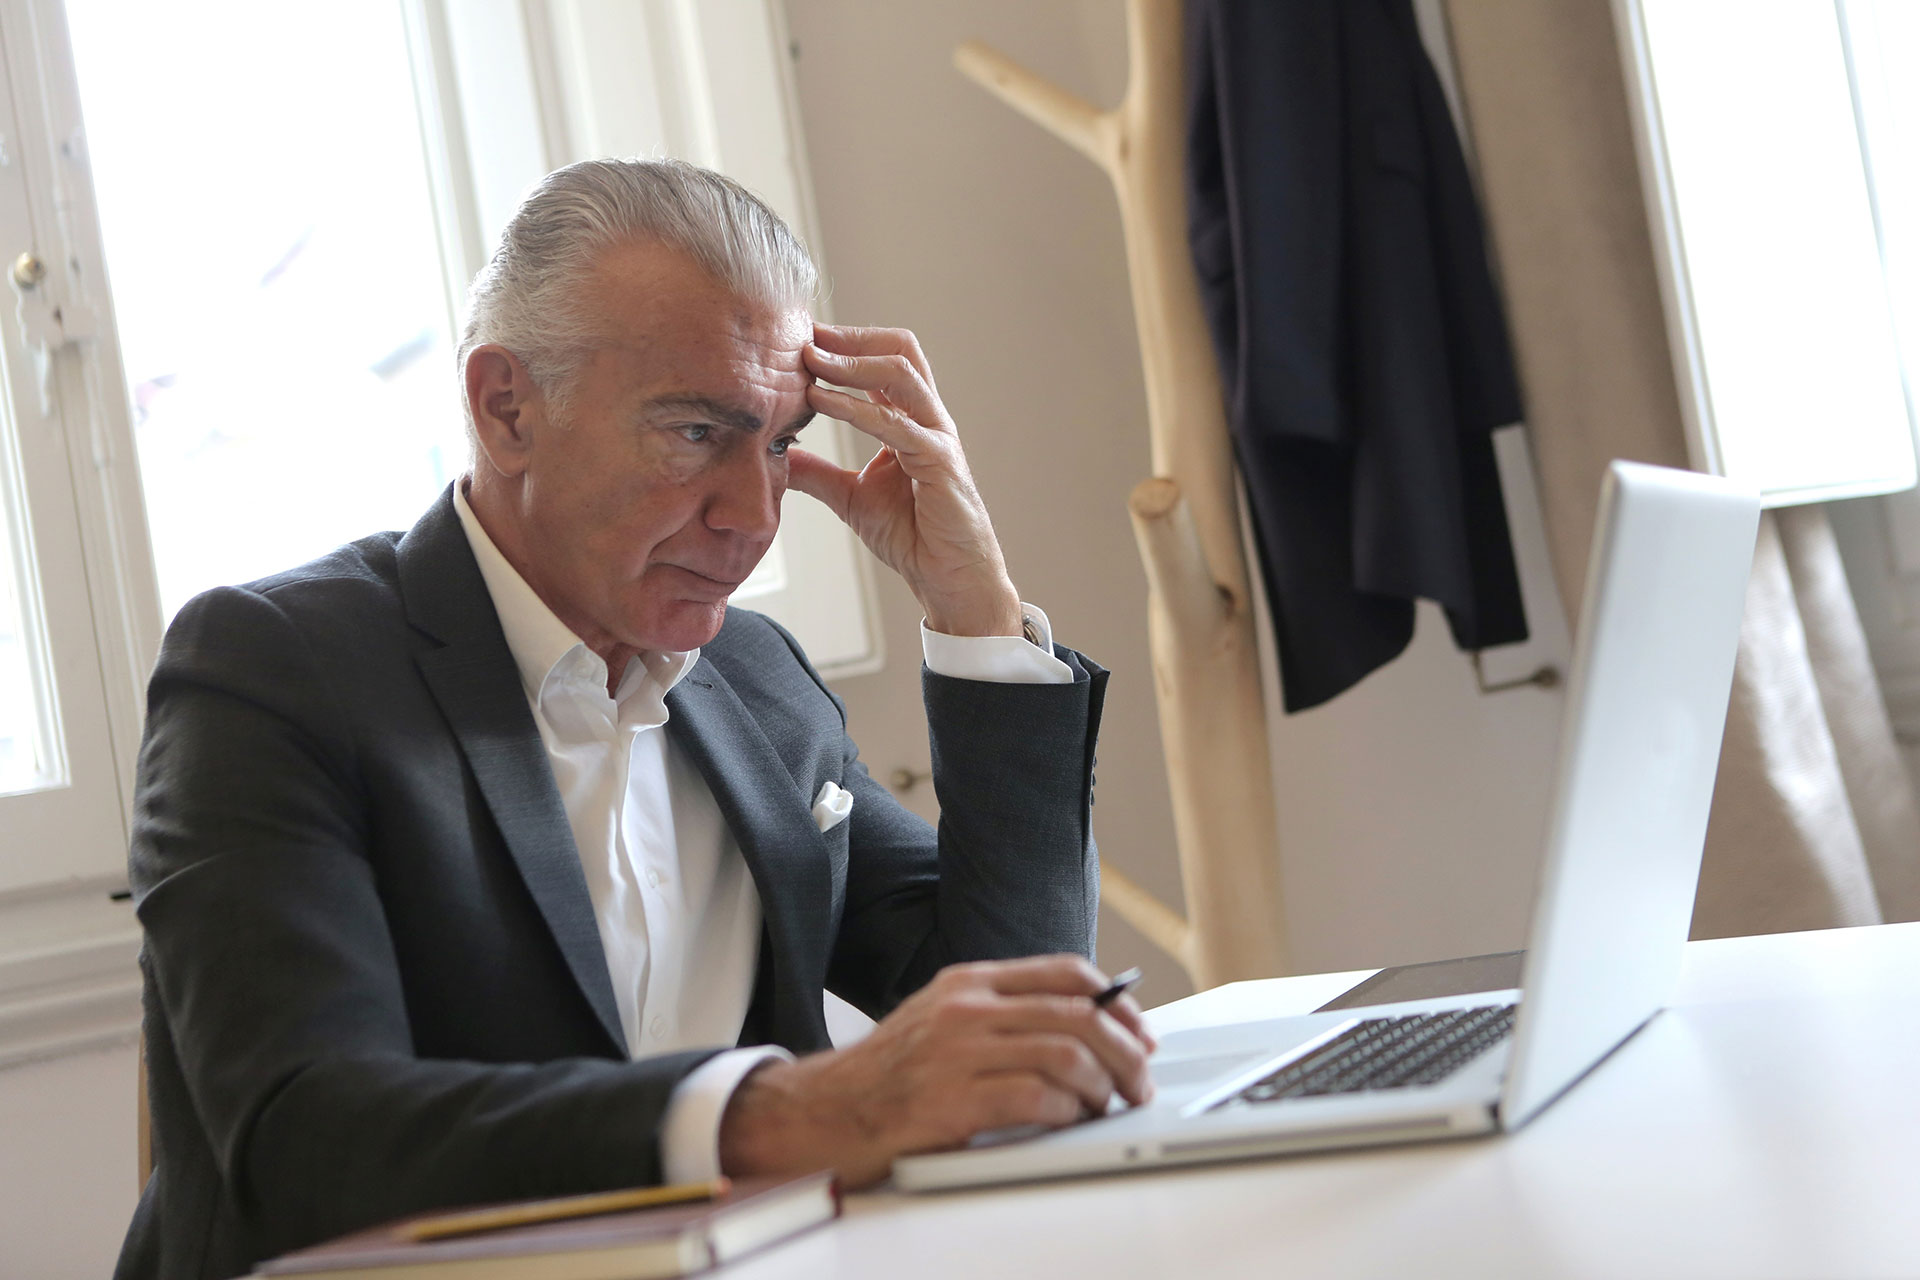 Man slightly stressed in Black Suit Jacket While Using Laptop